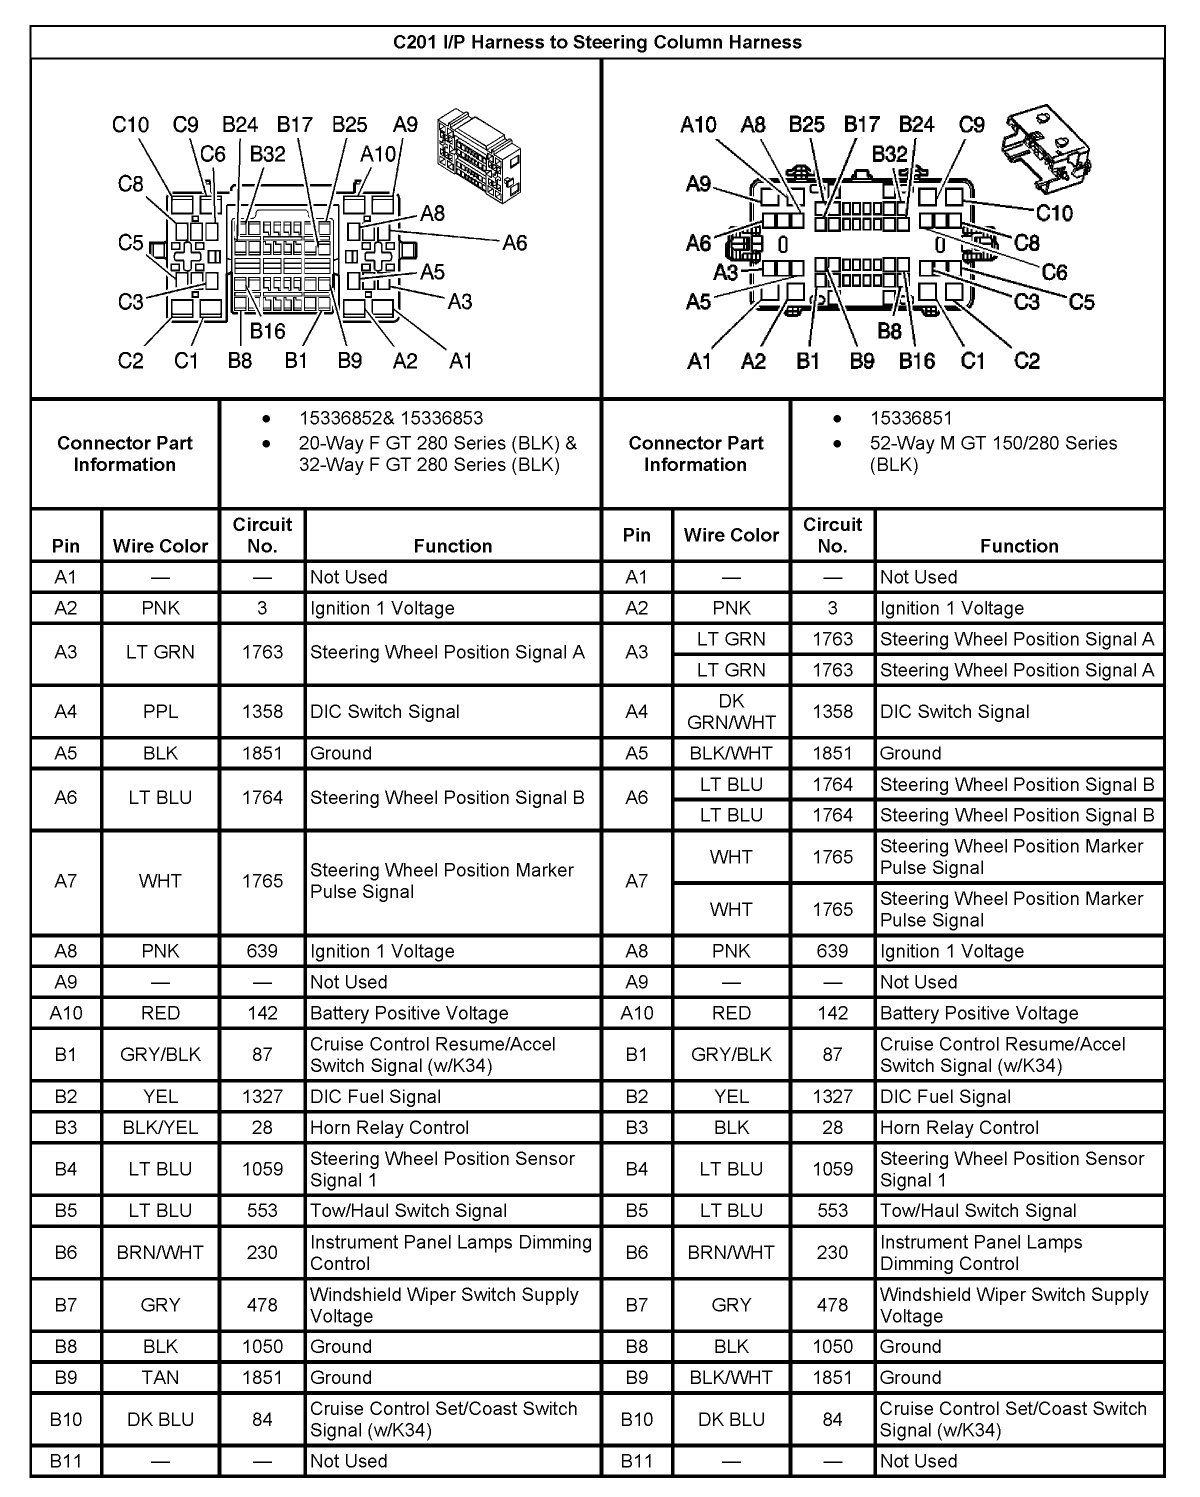 2004 gmc sierra radio wiring diagram | free wiring diagram 2001 gmc 2500hd wiring diagram #13